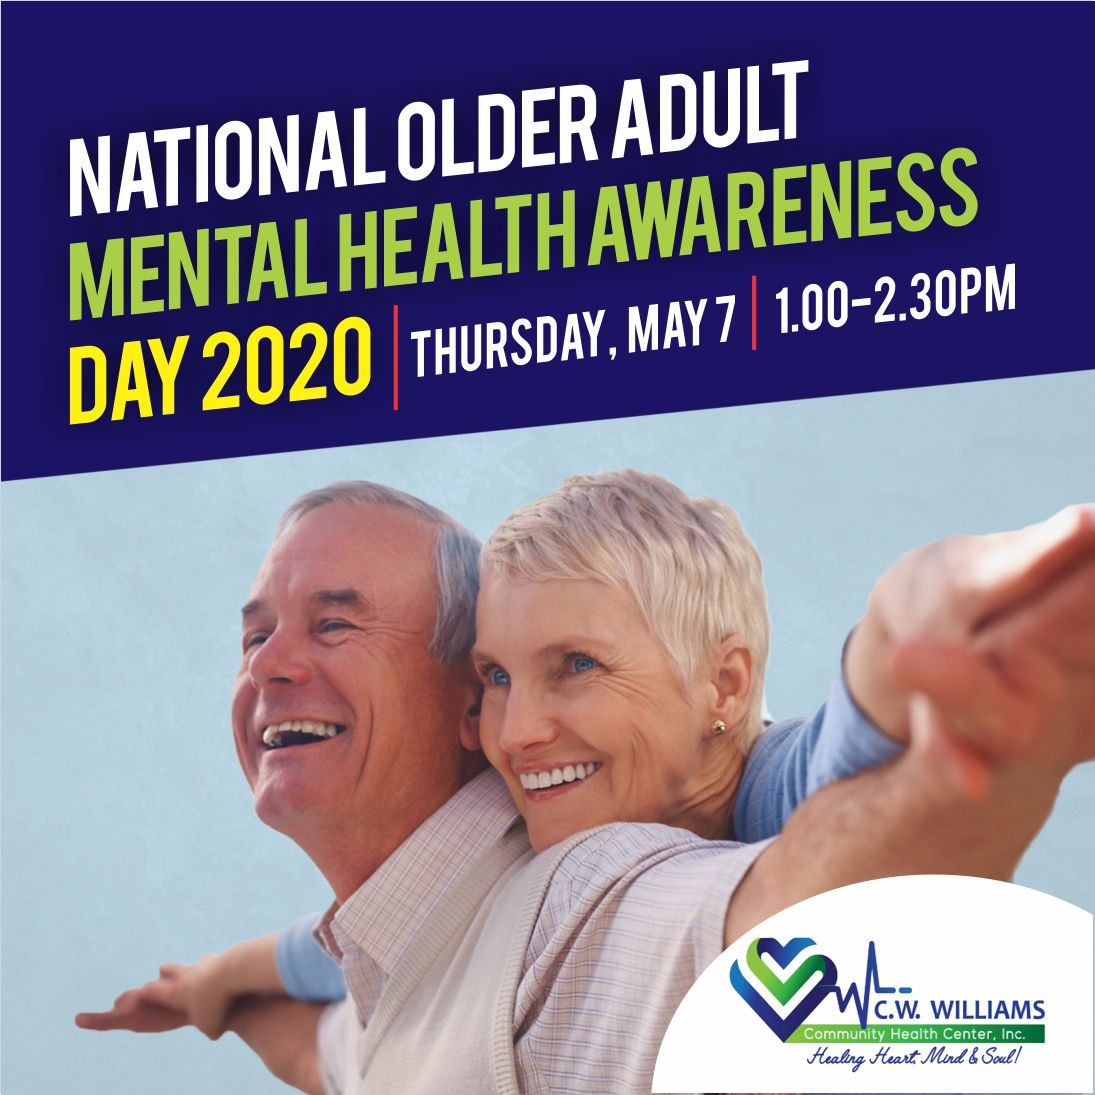 national older adult mental health awareness event design